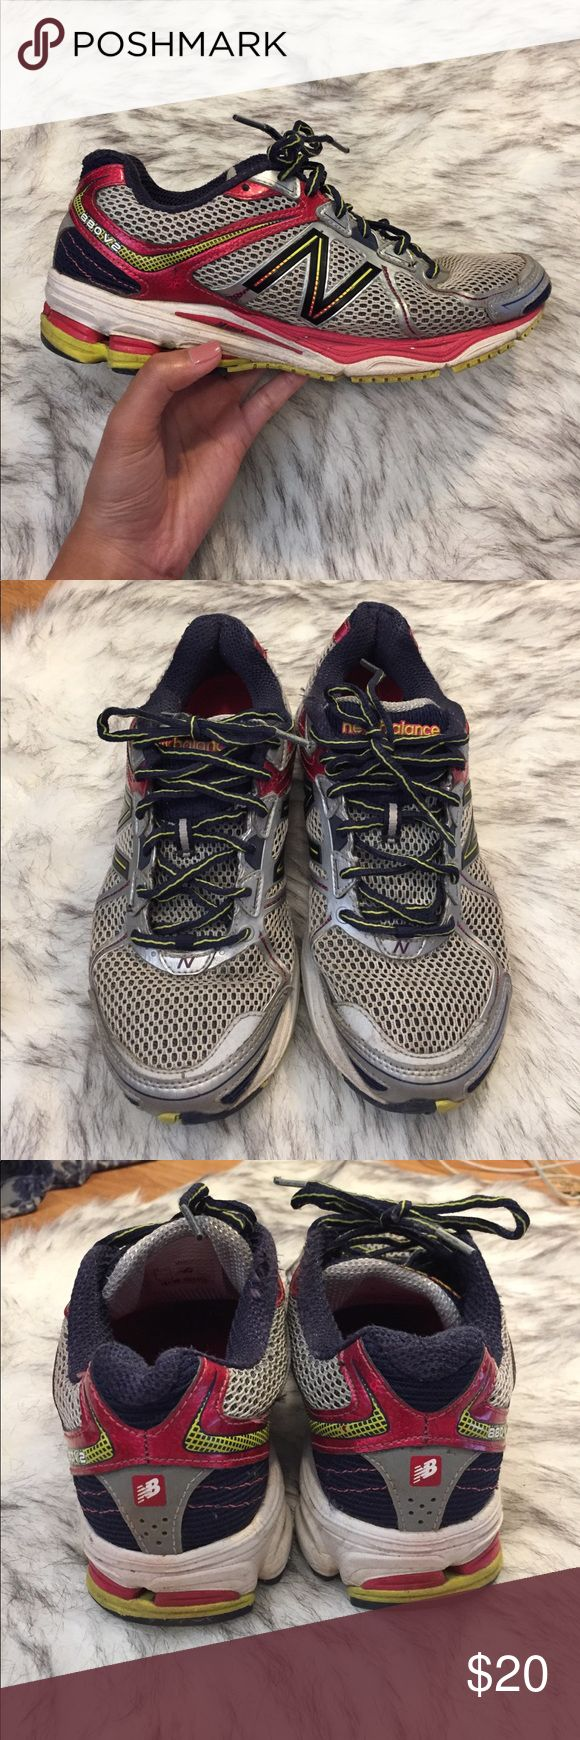 New Balance Trail Sneakers Worn this for a season of cross country, still in fairly good condition, there's a rip on the fabric as shown in the photo, barely noticeable. Make an offer! New Balance Shoes Sneakers